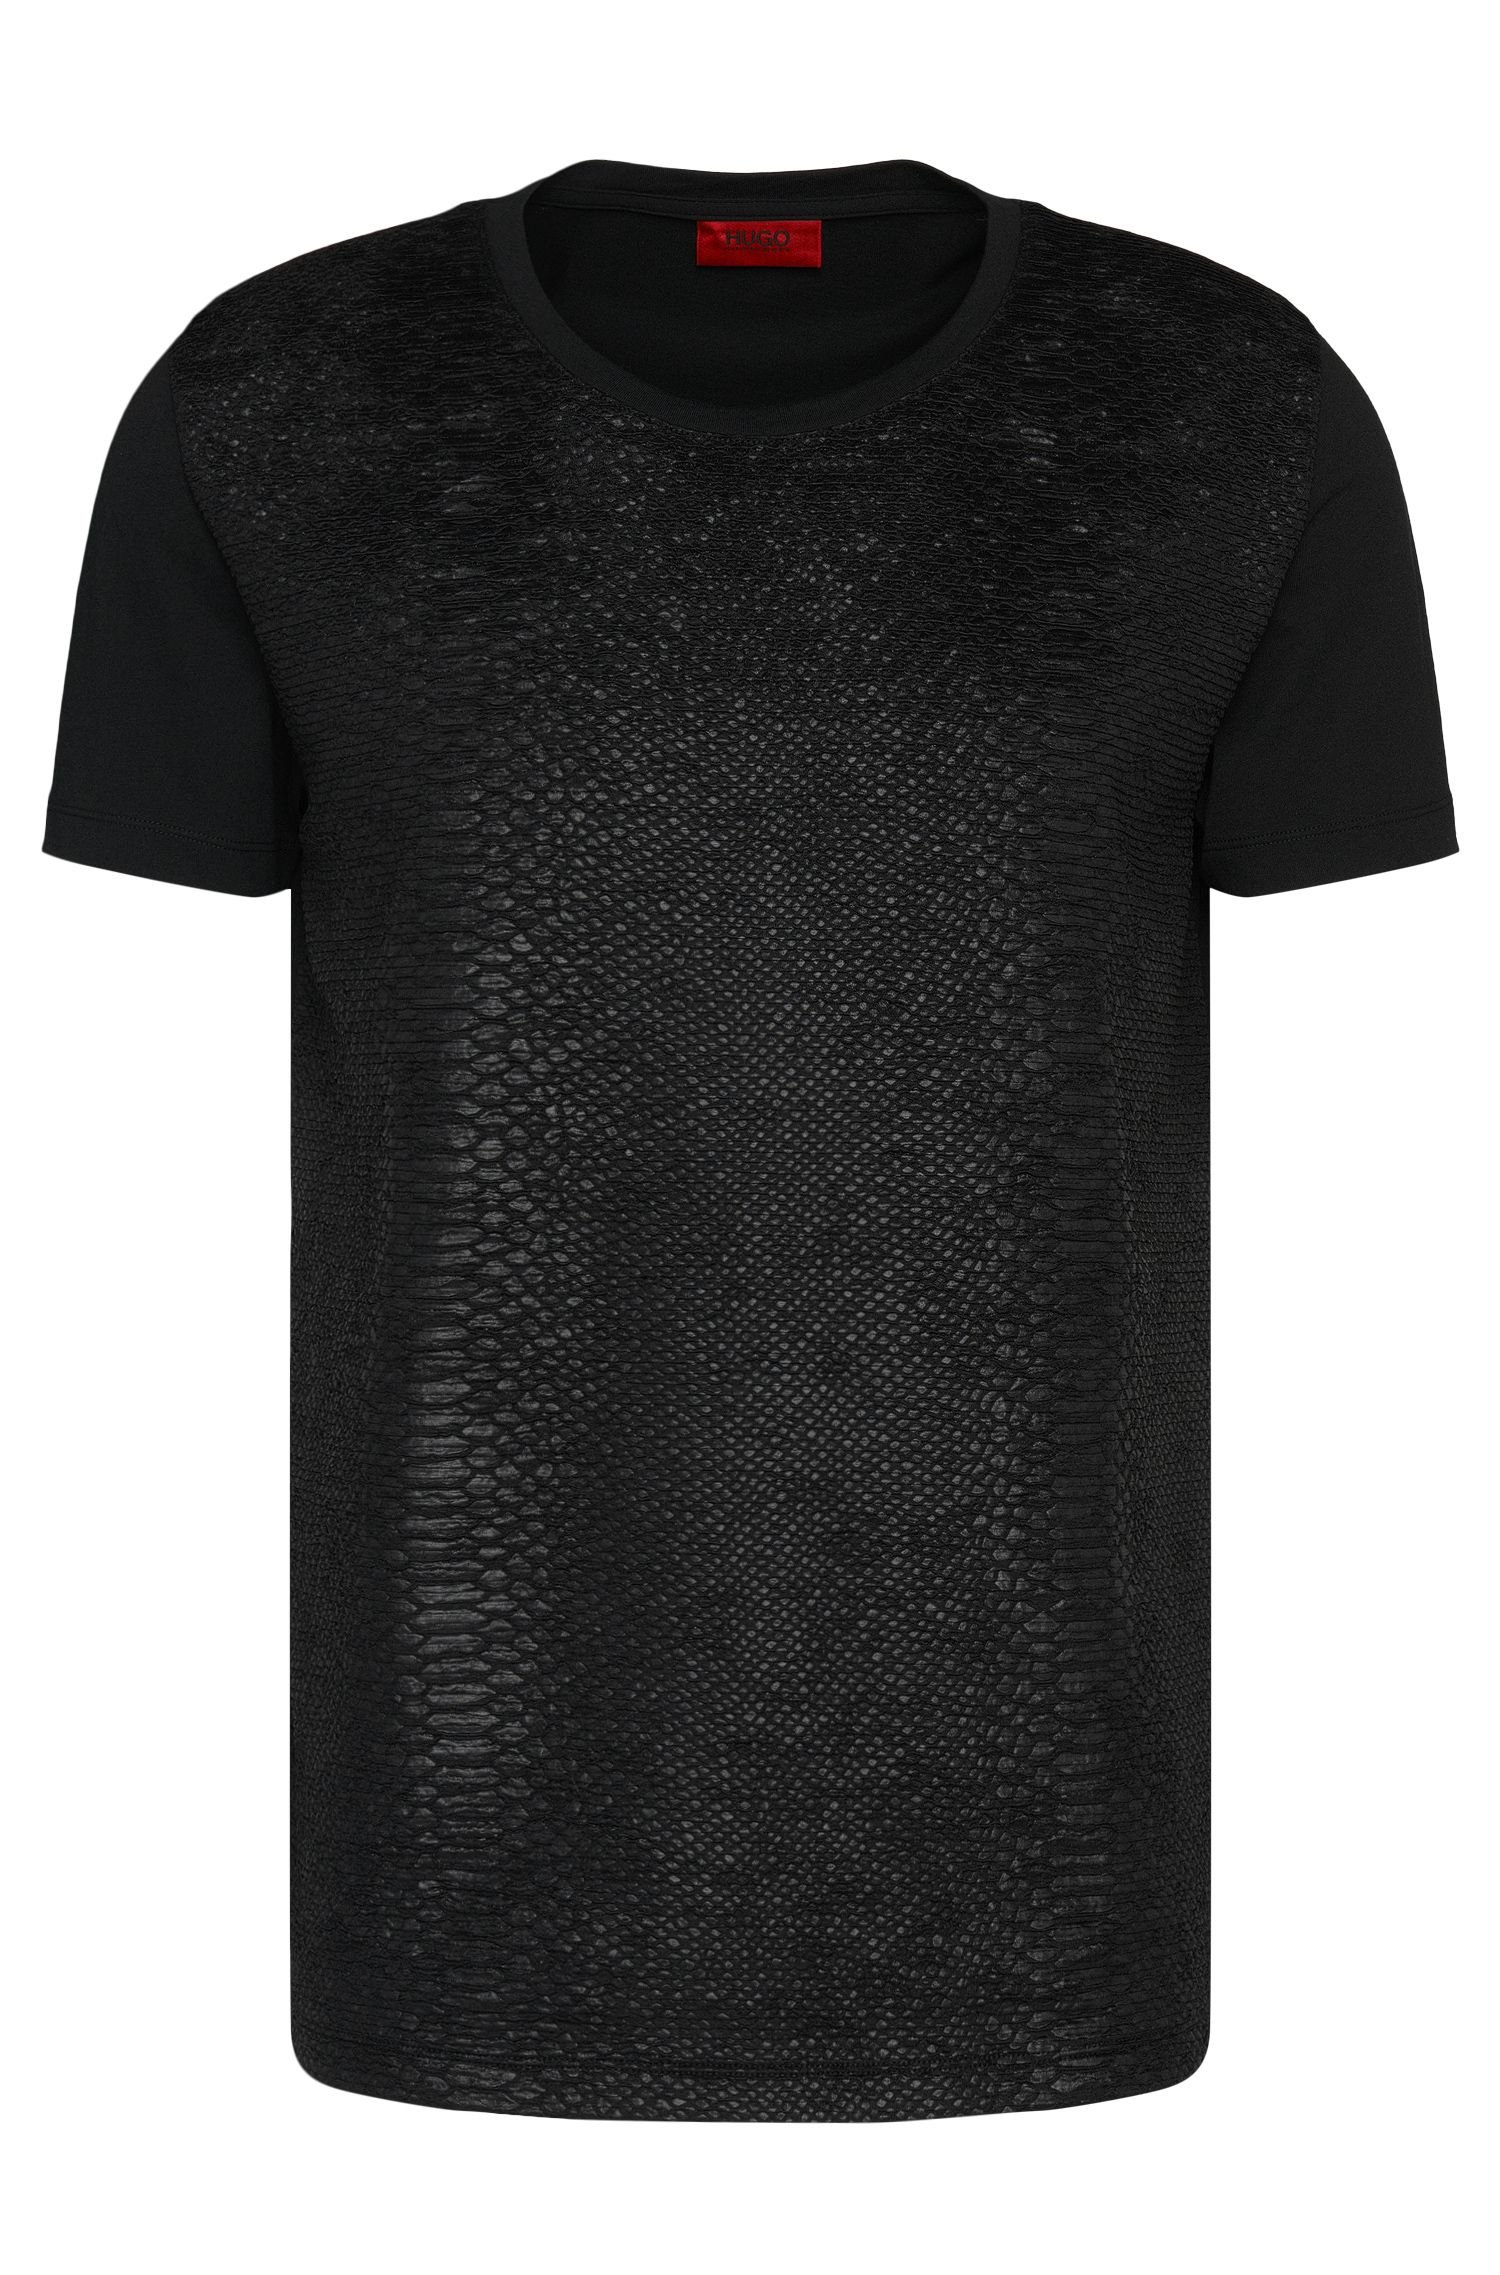 'Desert' | Cotton Snakeskin Textured T-Shirt